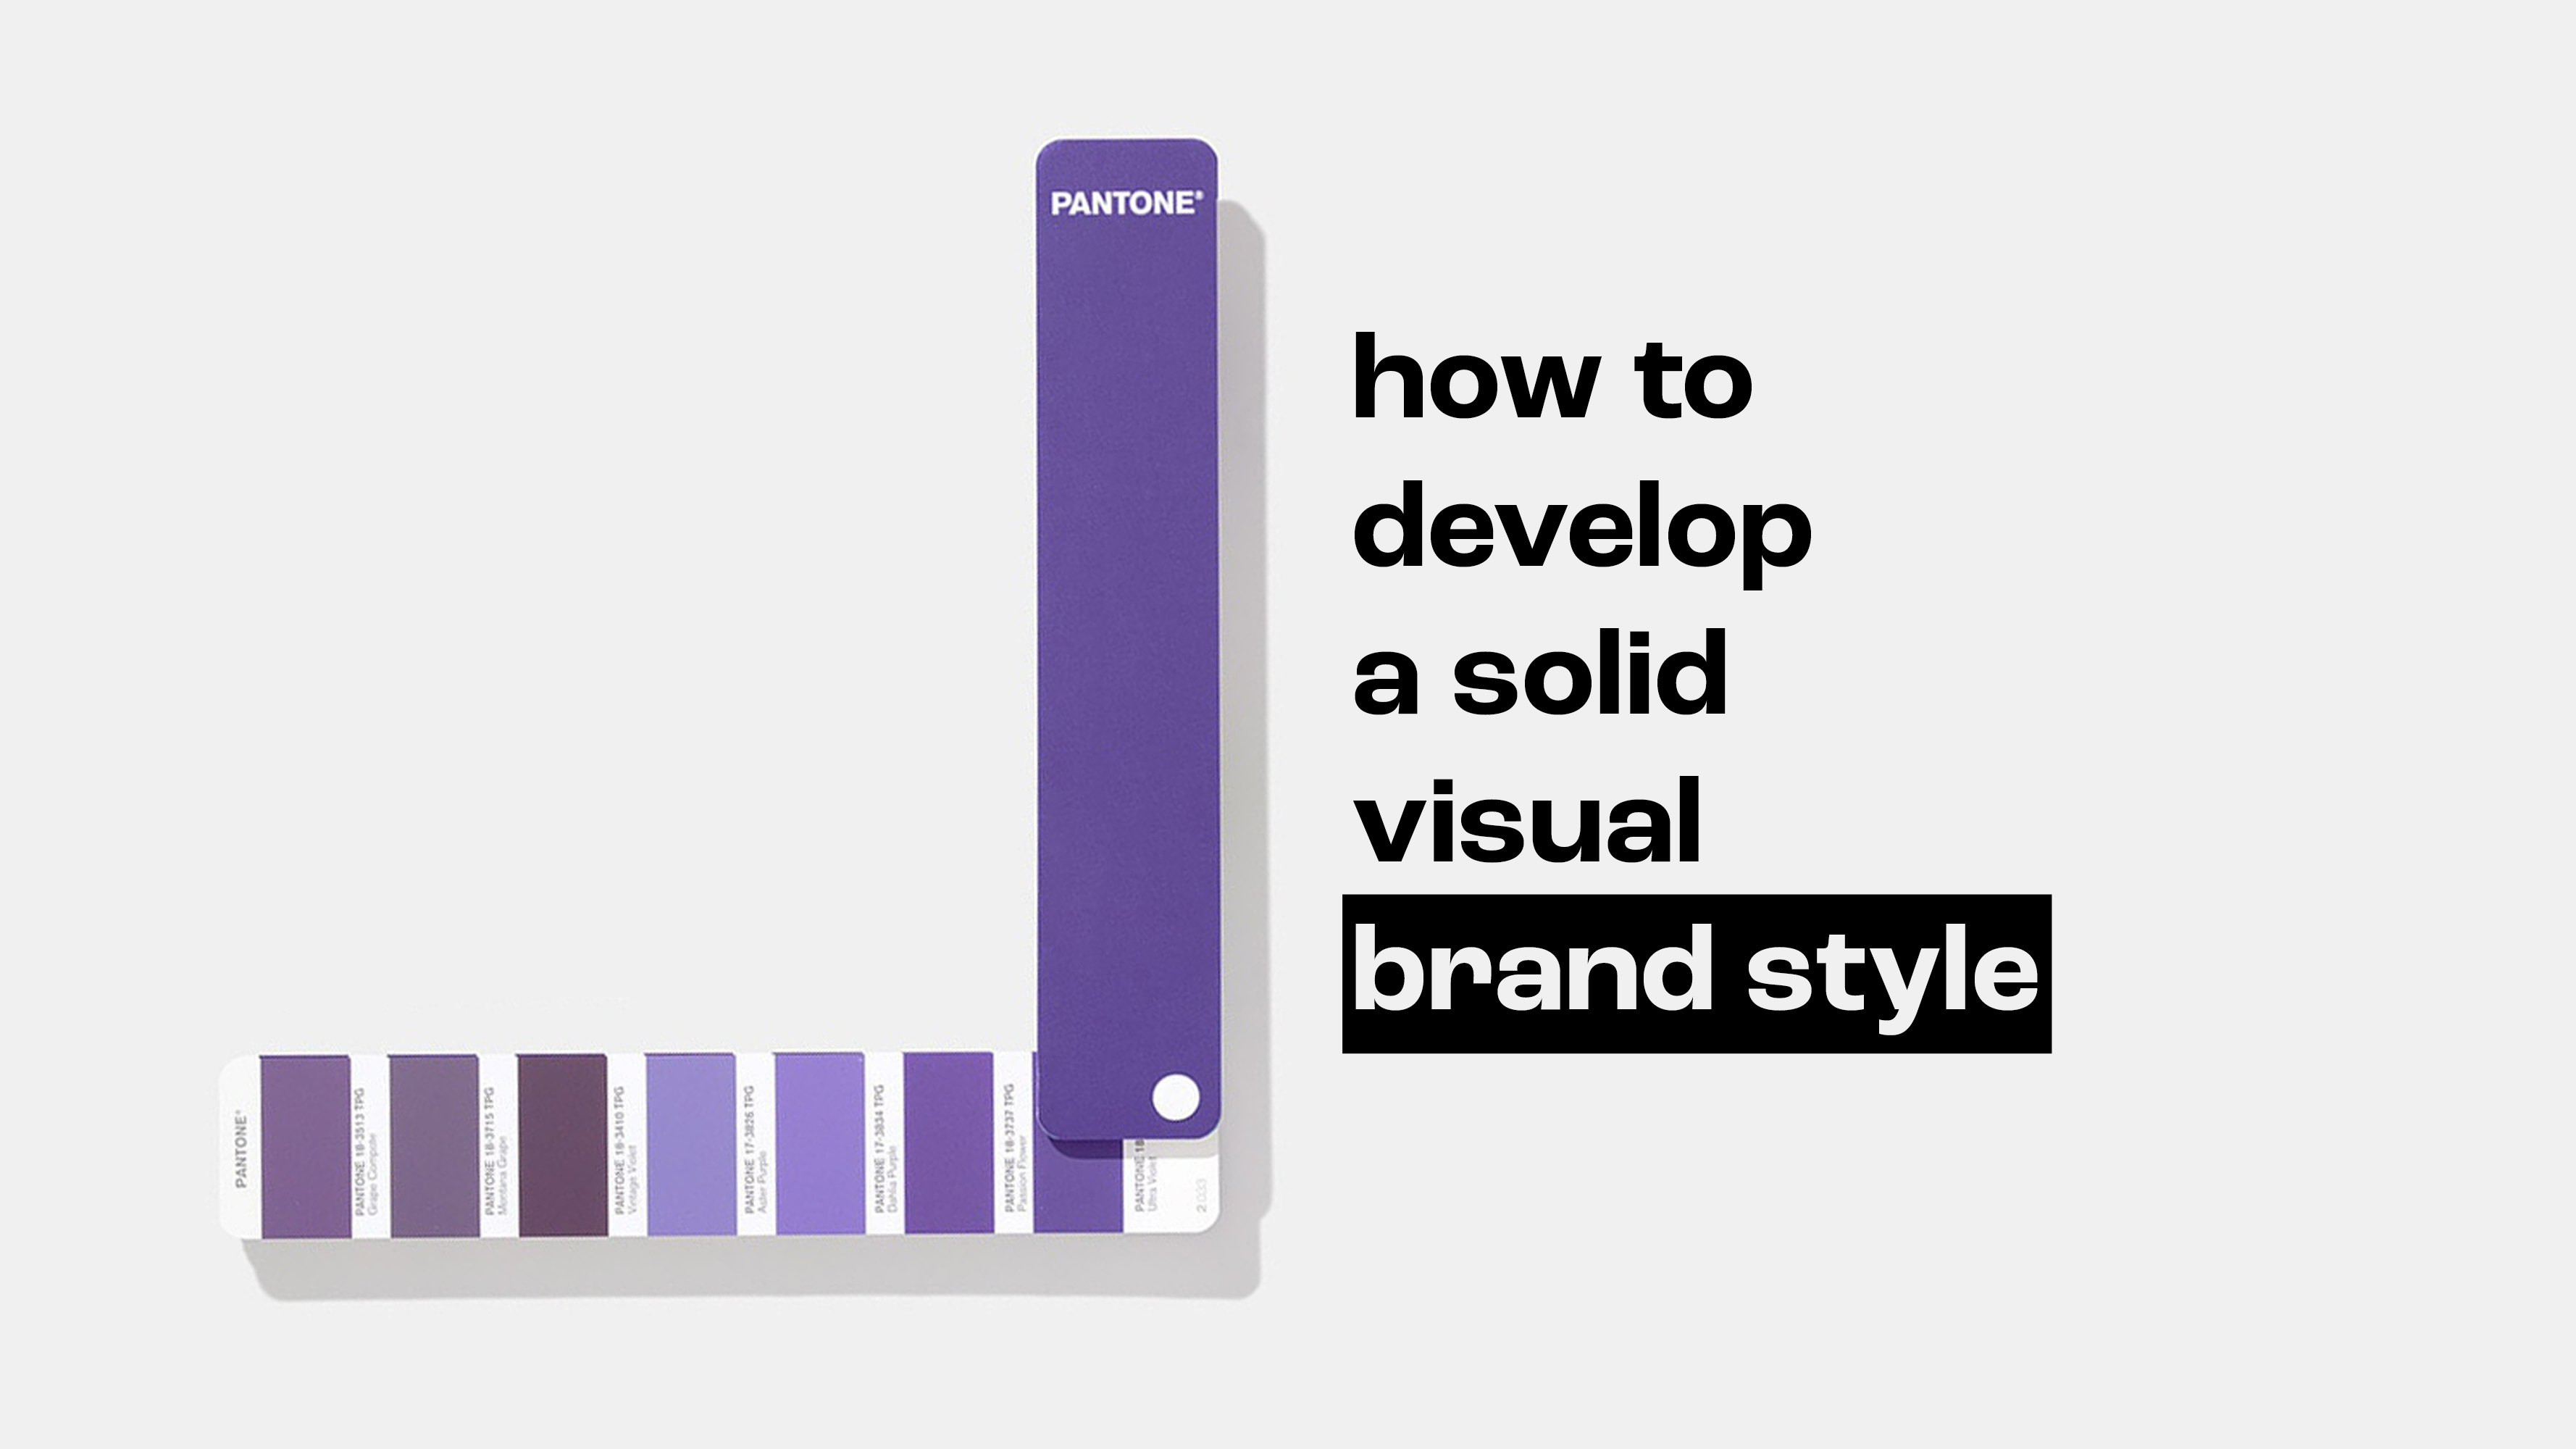 How to Develop a Solid Visual Brand Style?